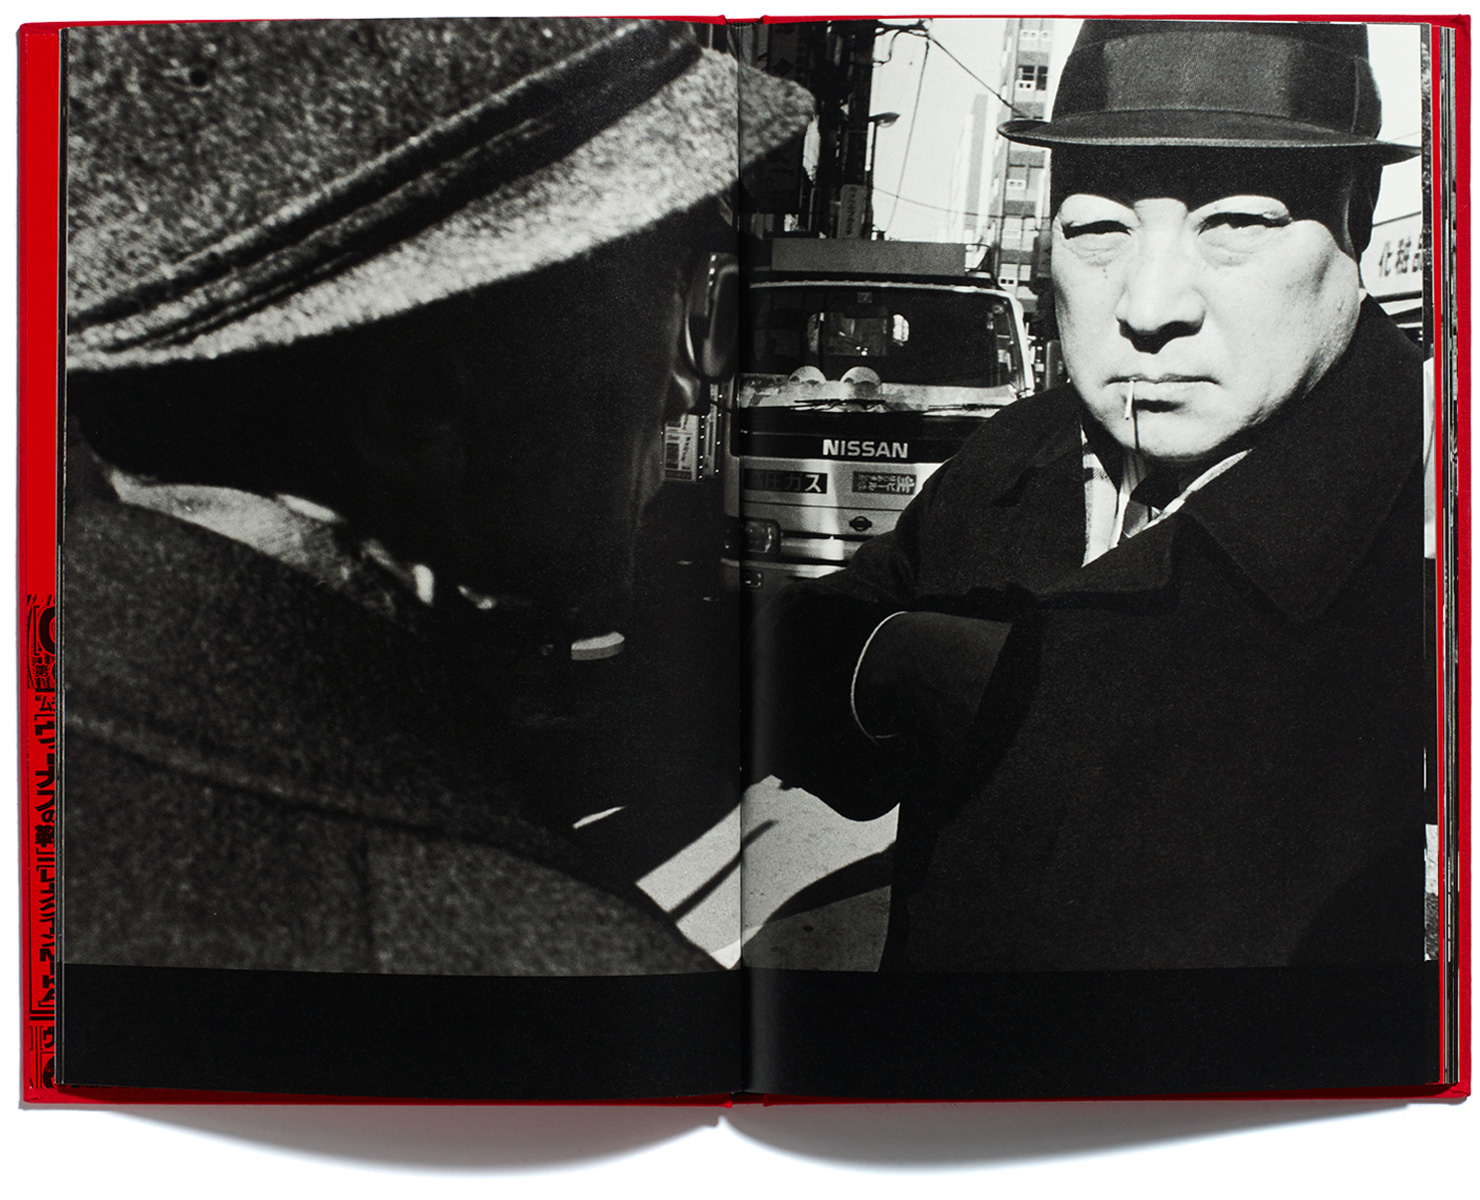 Browns Editions, Browns Editions Publishing, Browns Editions Books, Browns Editions Bruce Gilden, Browns Editions Go, Browns Editions Bruce Gilden GoPublished by Browns Editions